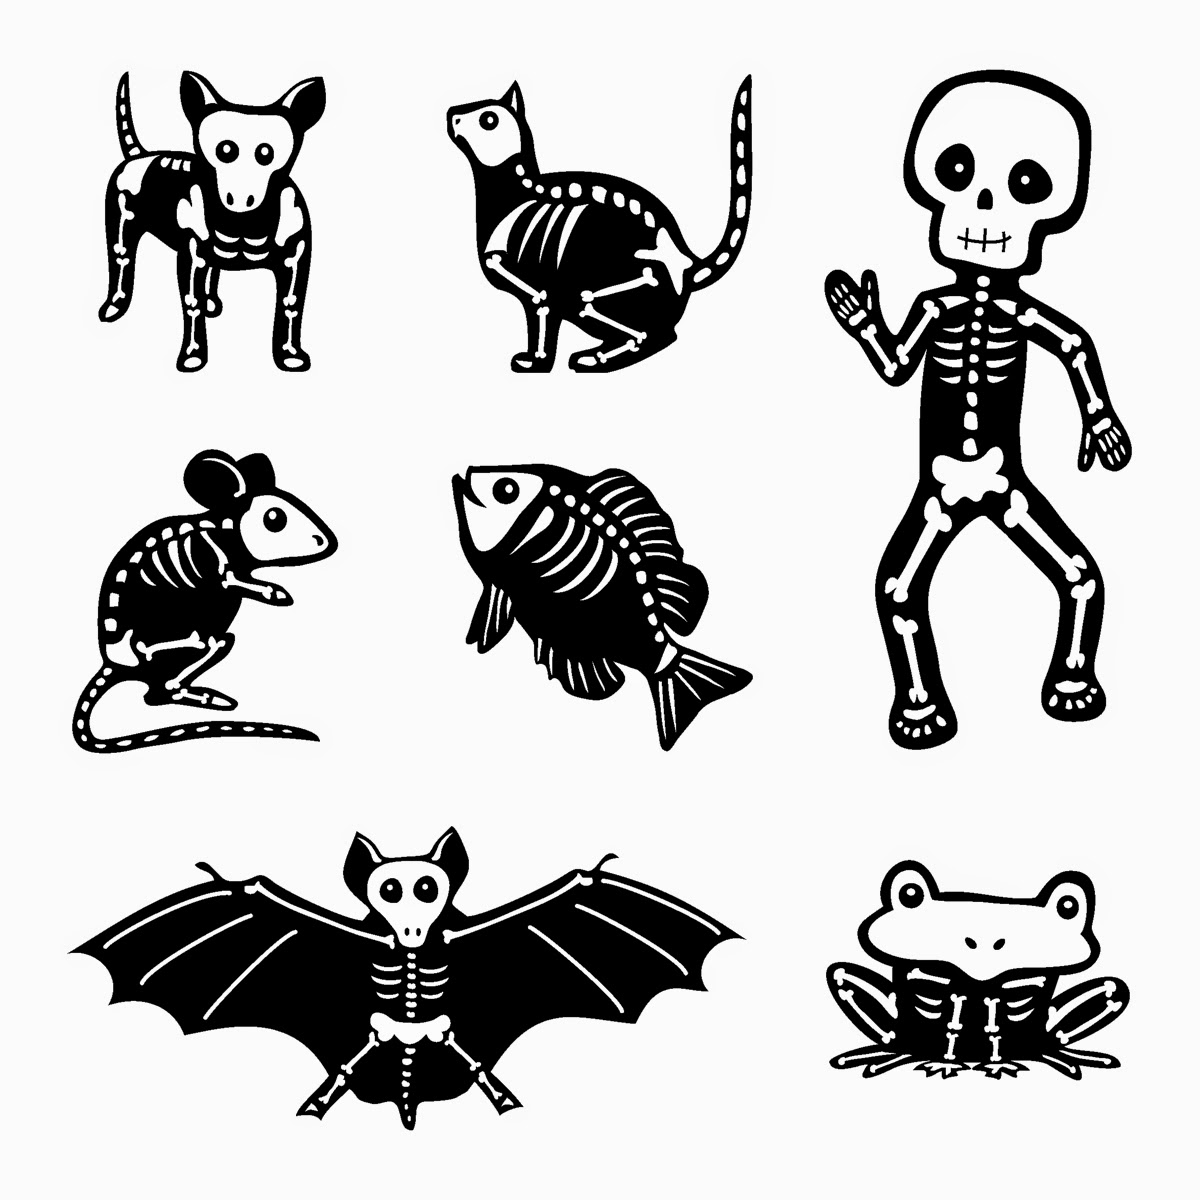 http://www.joann.com/inkadinkado-halloween-inchie-clear-stamps-little-skeletons/13402961.html